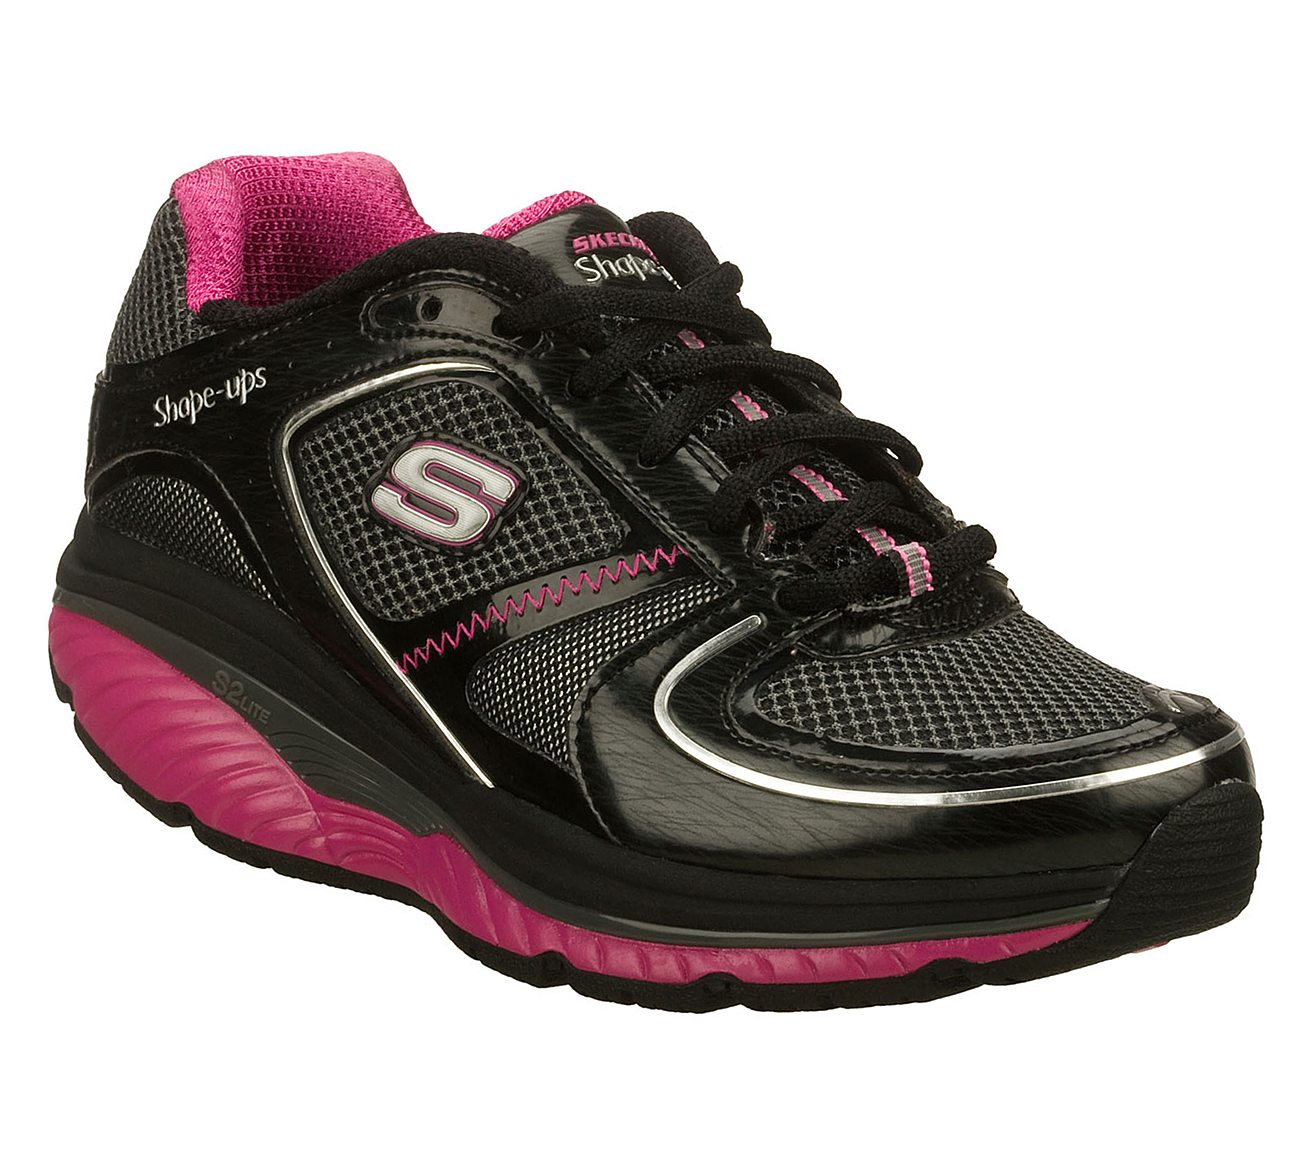 skechers shape ups nursing shoes